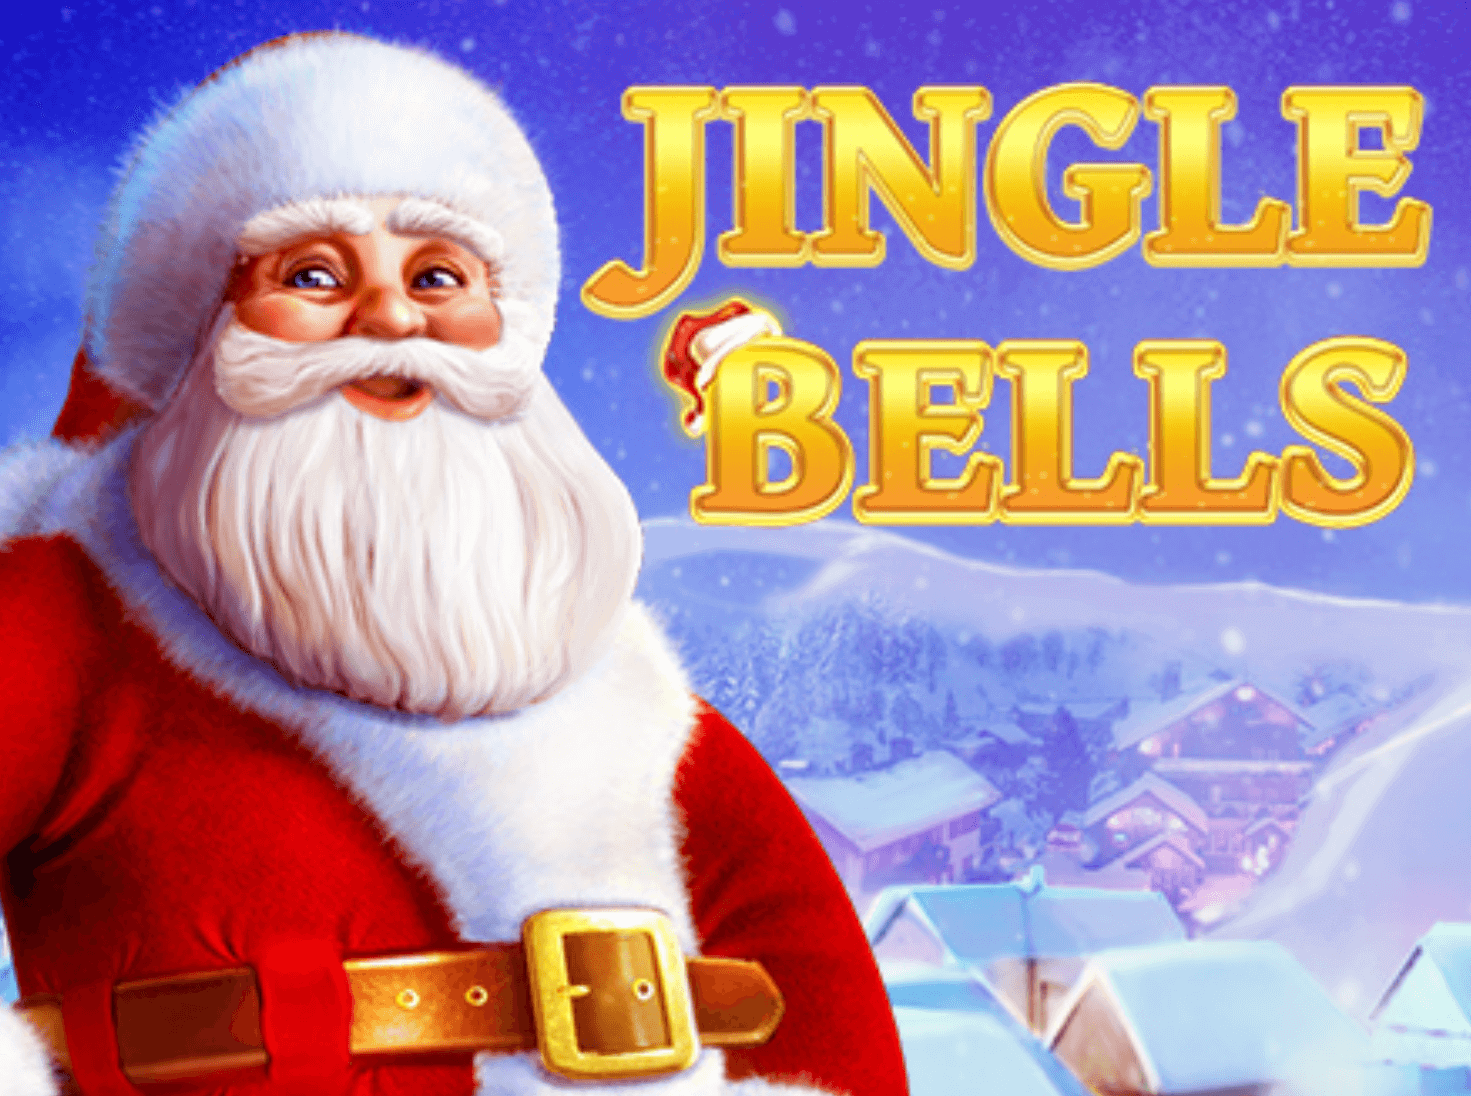 jingle bells logo 2